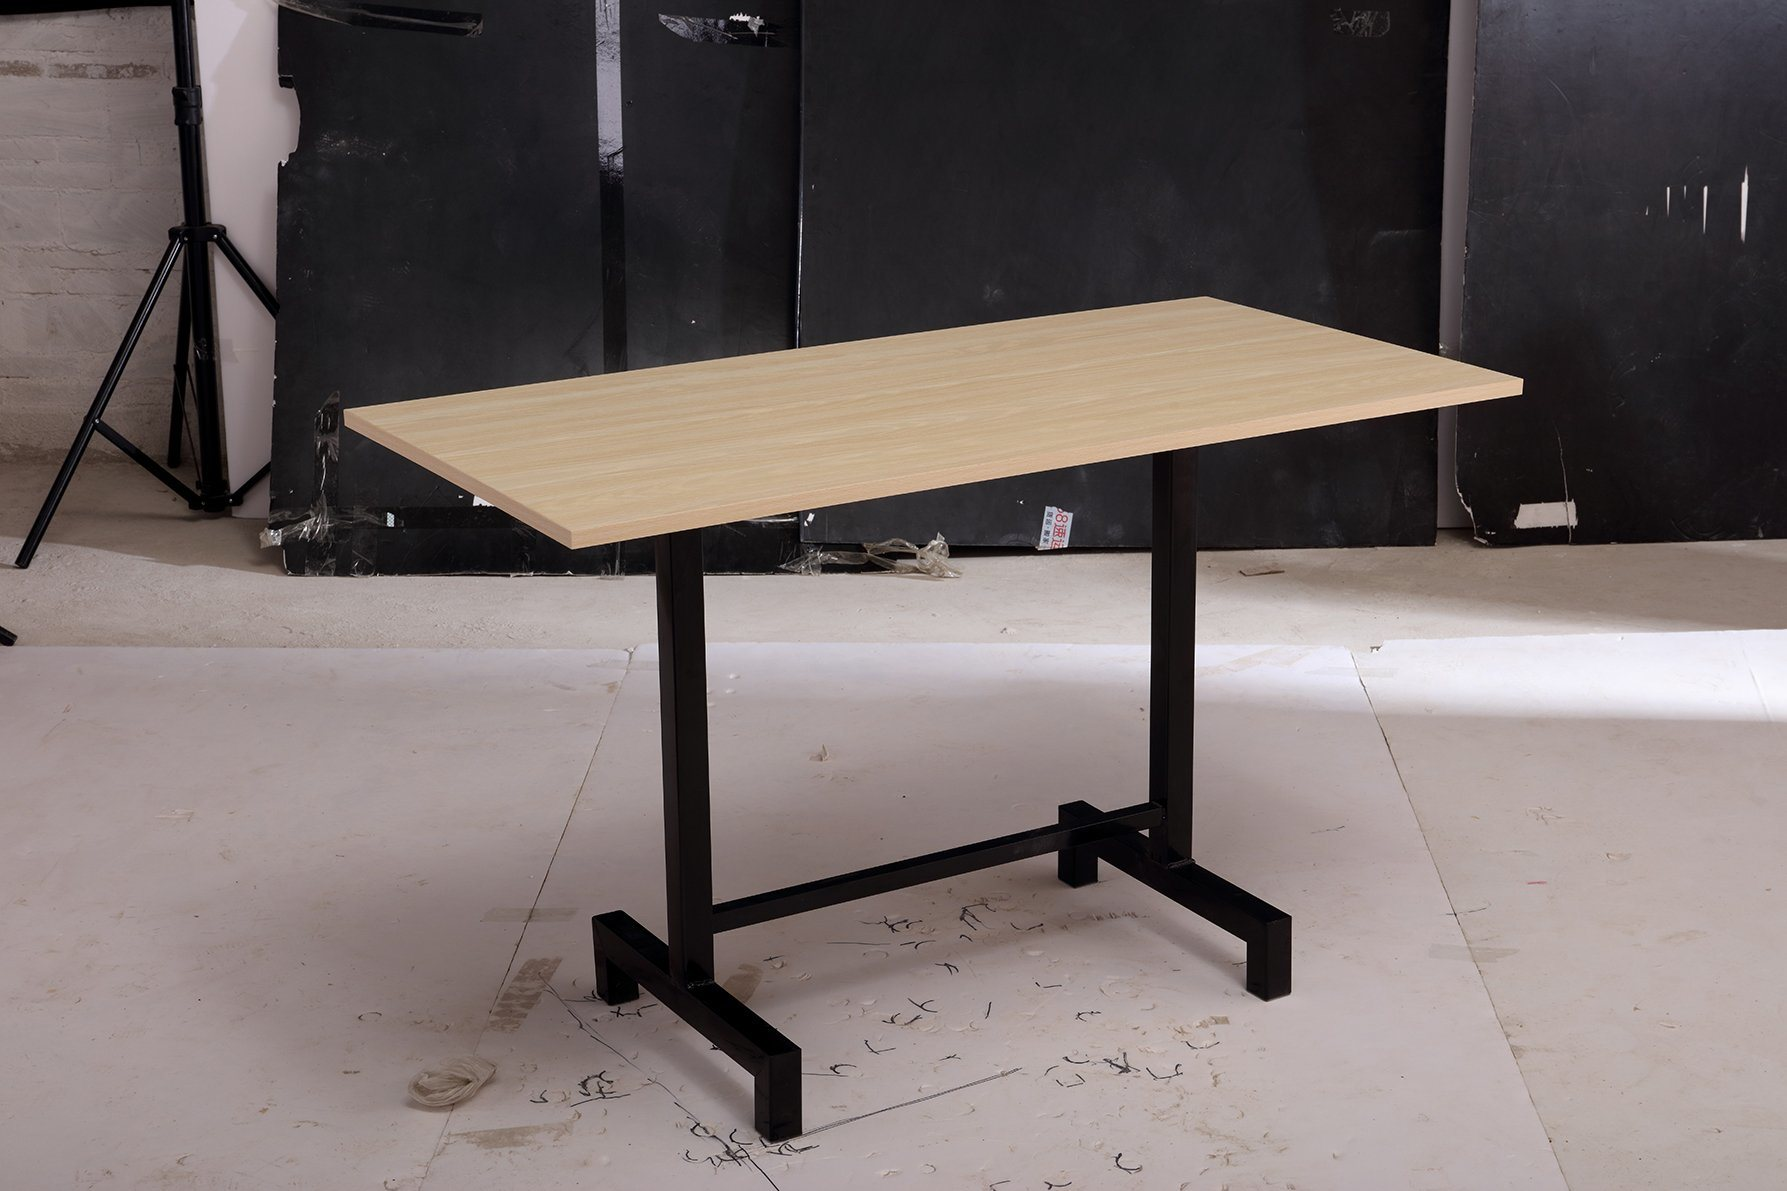 China Traditional Design Cheap Iron Hotel Restaurant Canteen Rectangle Table With Boards China Dining Table Wooden Board Table